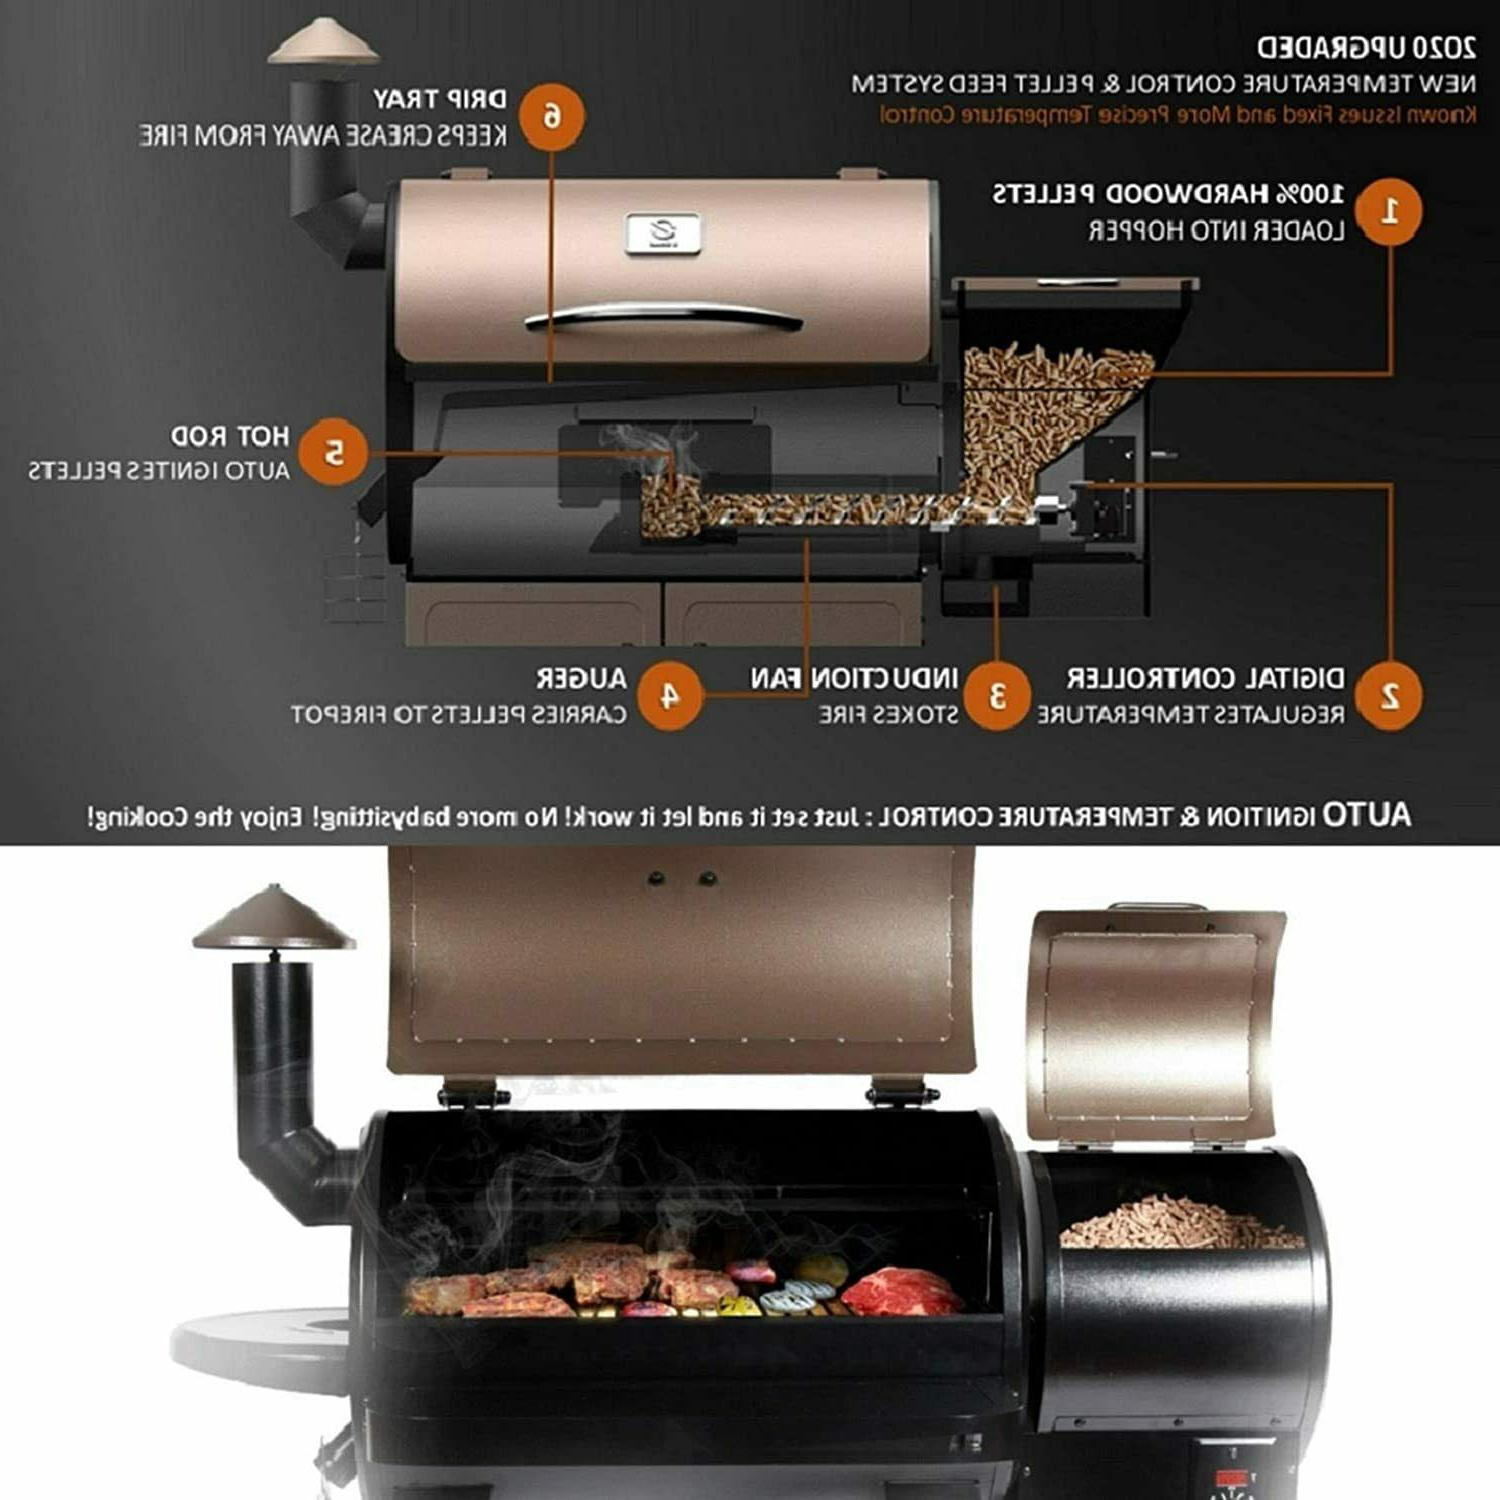 Z Grills Wood Grills 8- in-1 Bake,